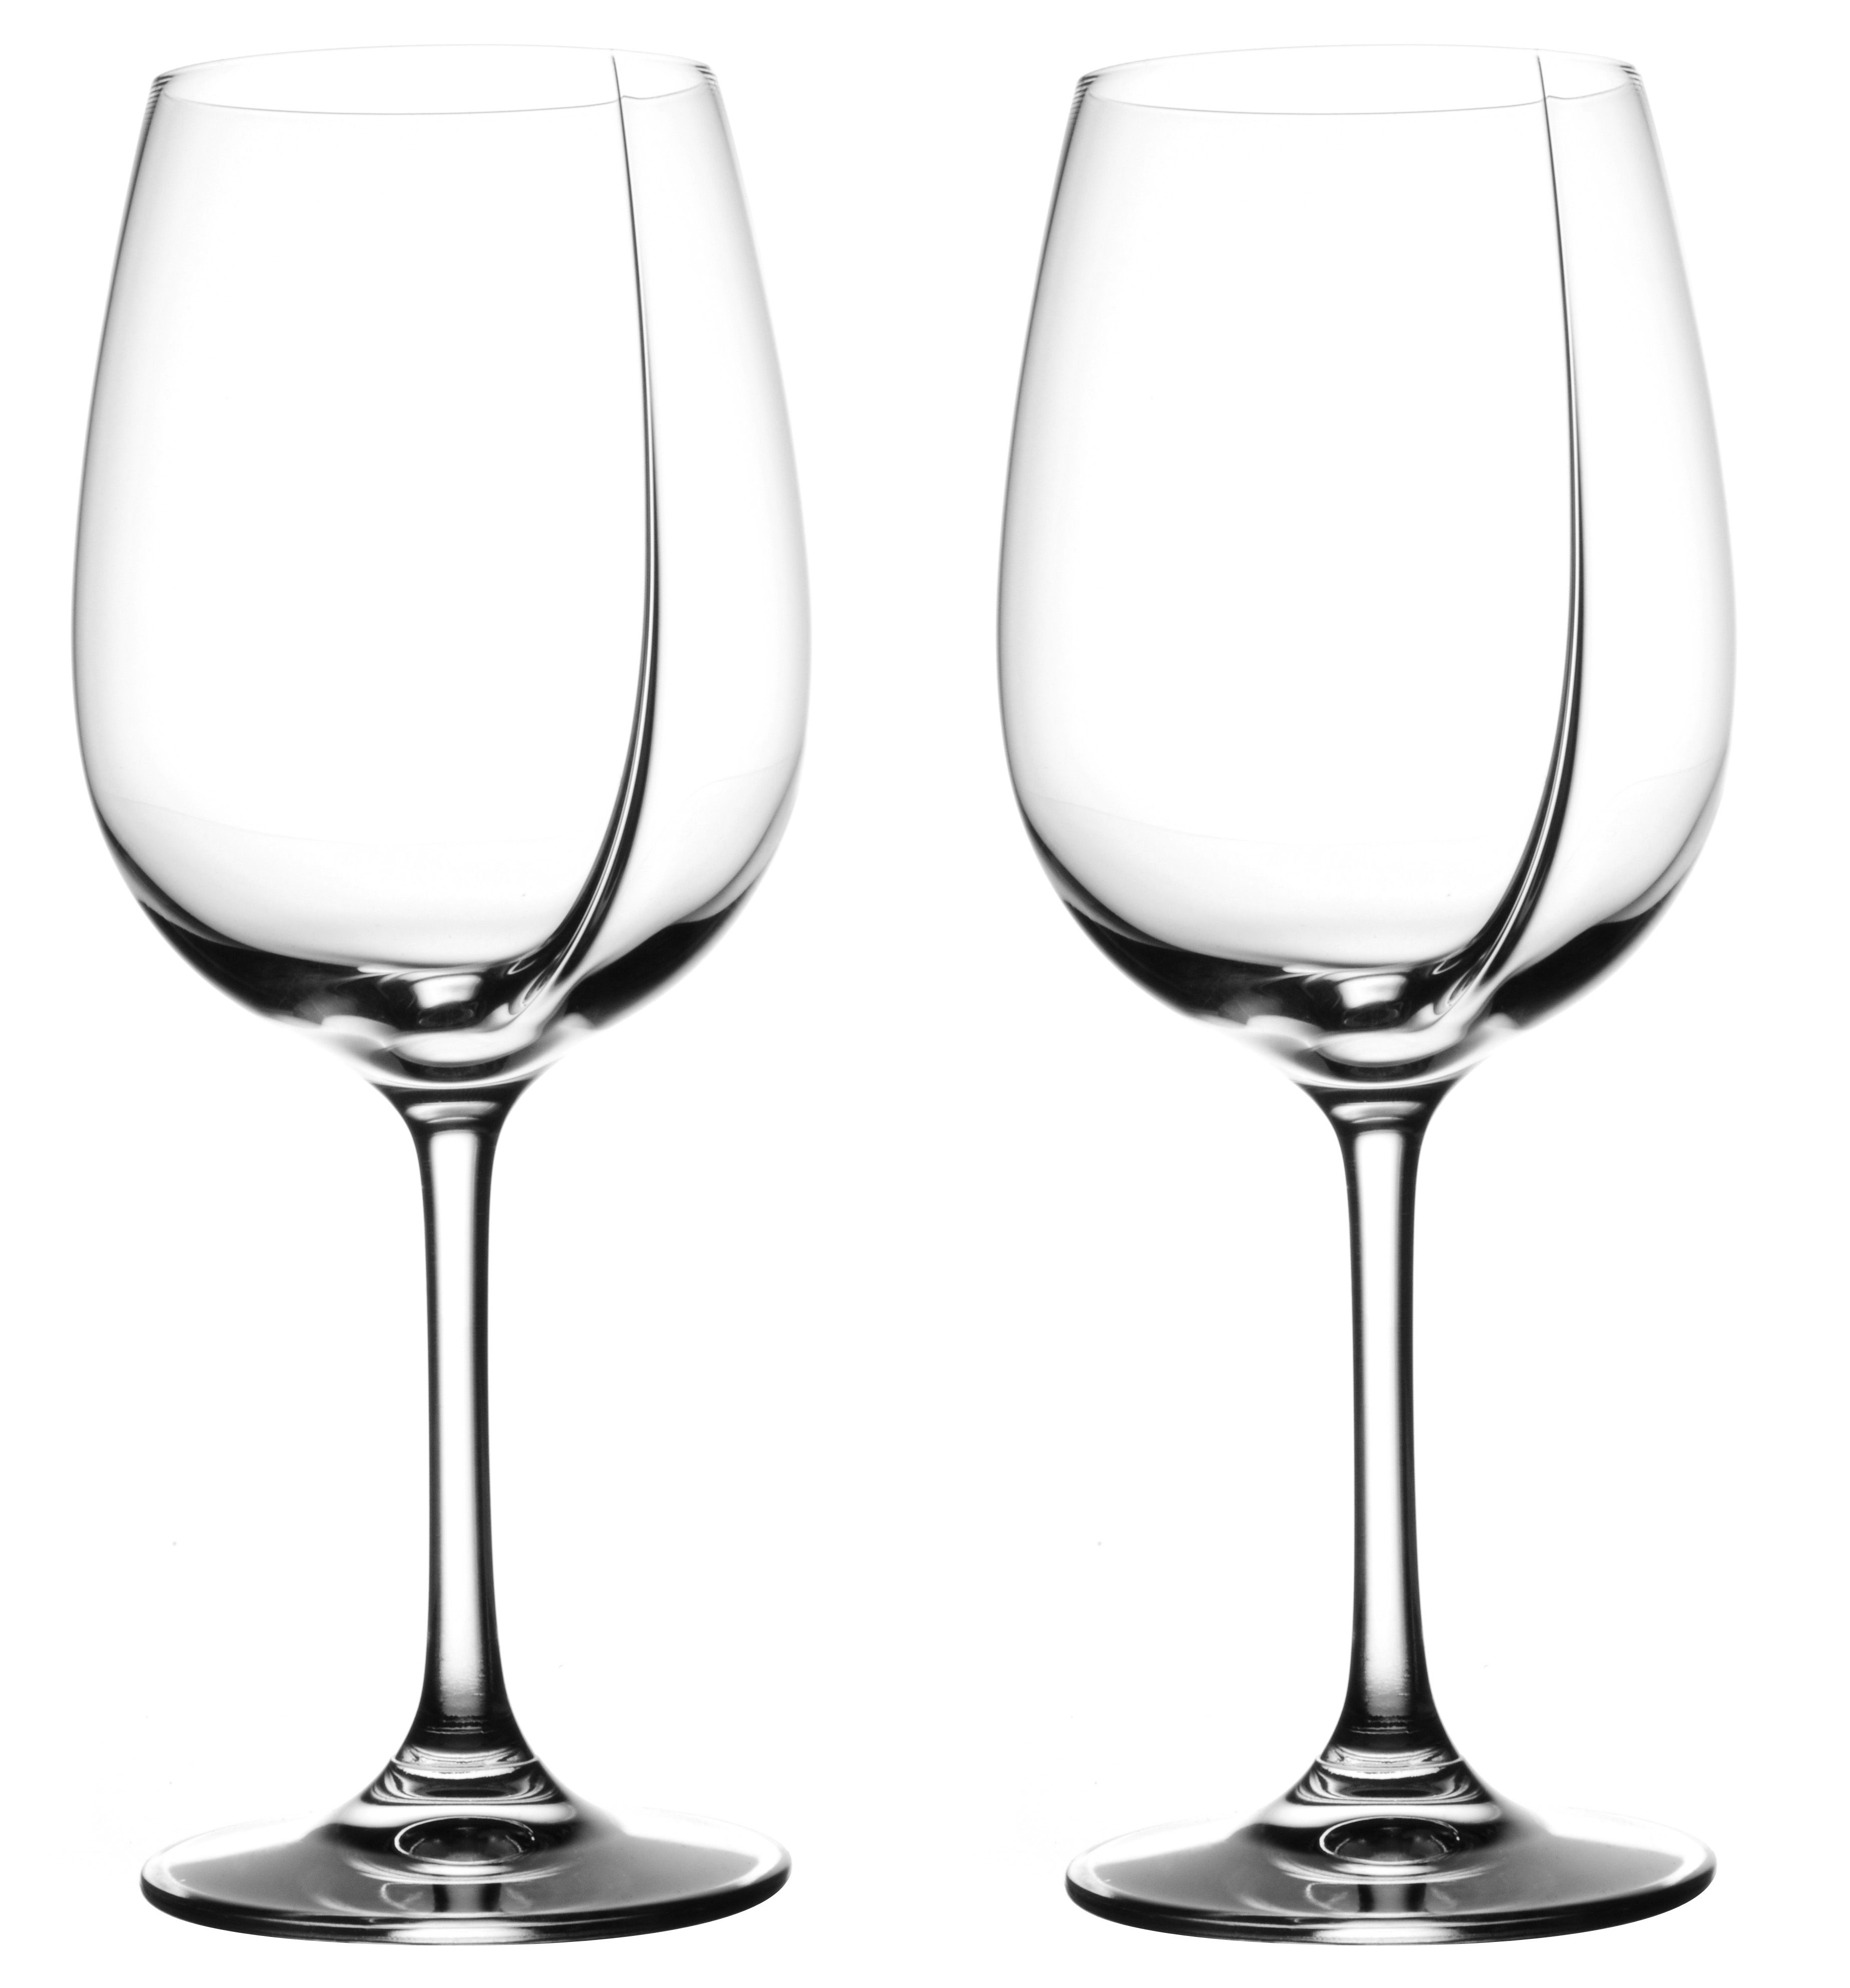 Tableware - Wine Glasses & Glassware - L'Exploreur Classic Wine glass - Set of 2 tasting glasses by L'Atelier du Vin - Clear - Blown glass